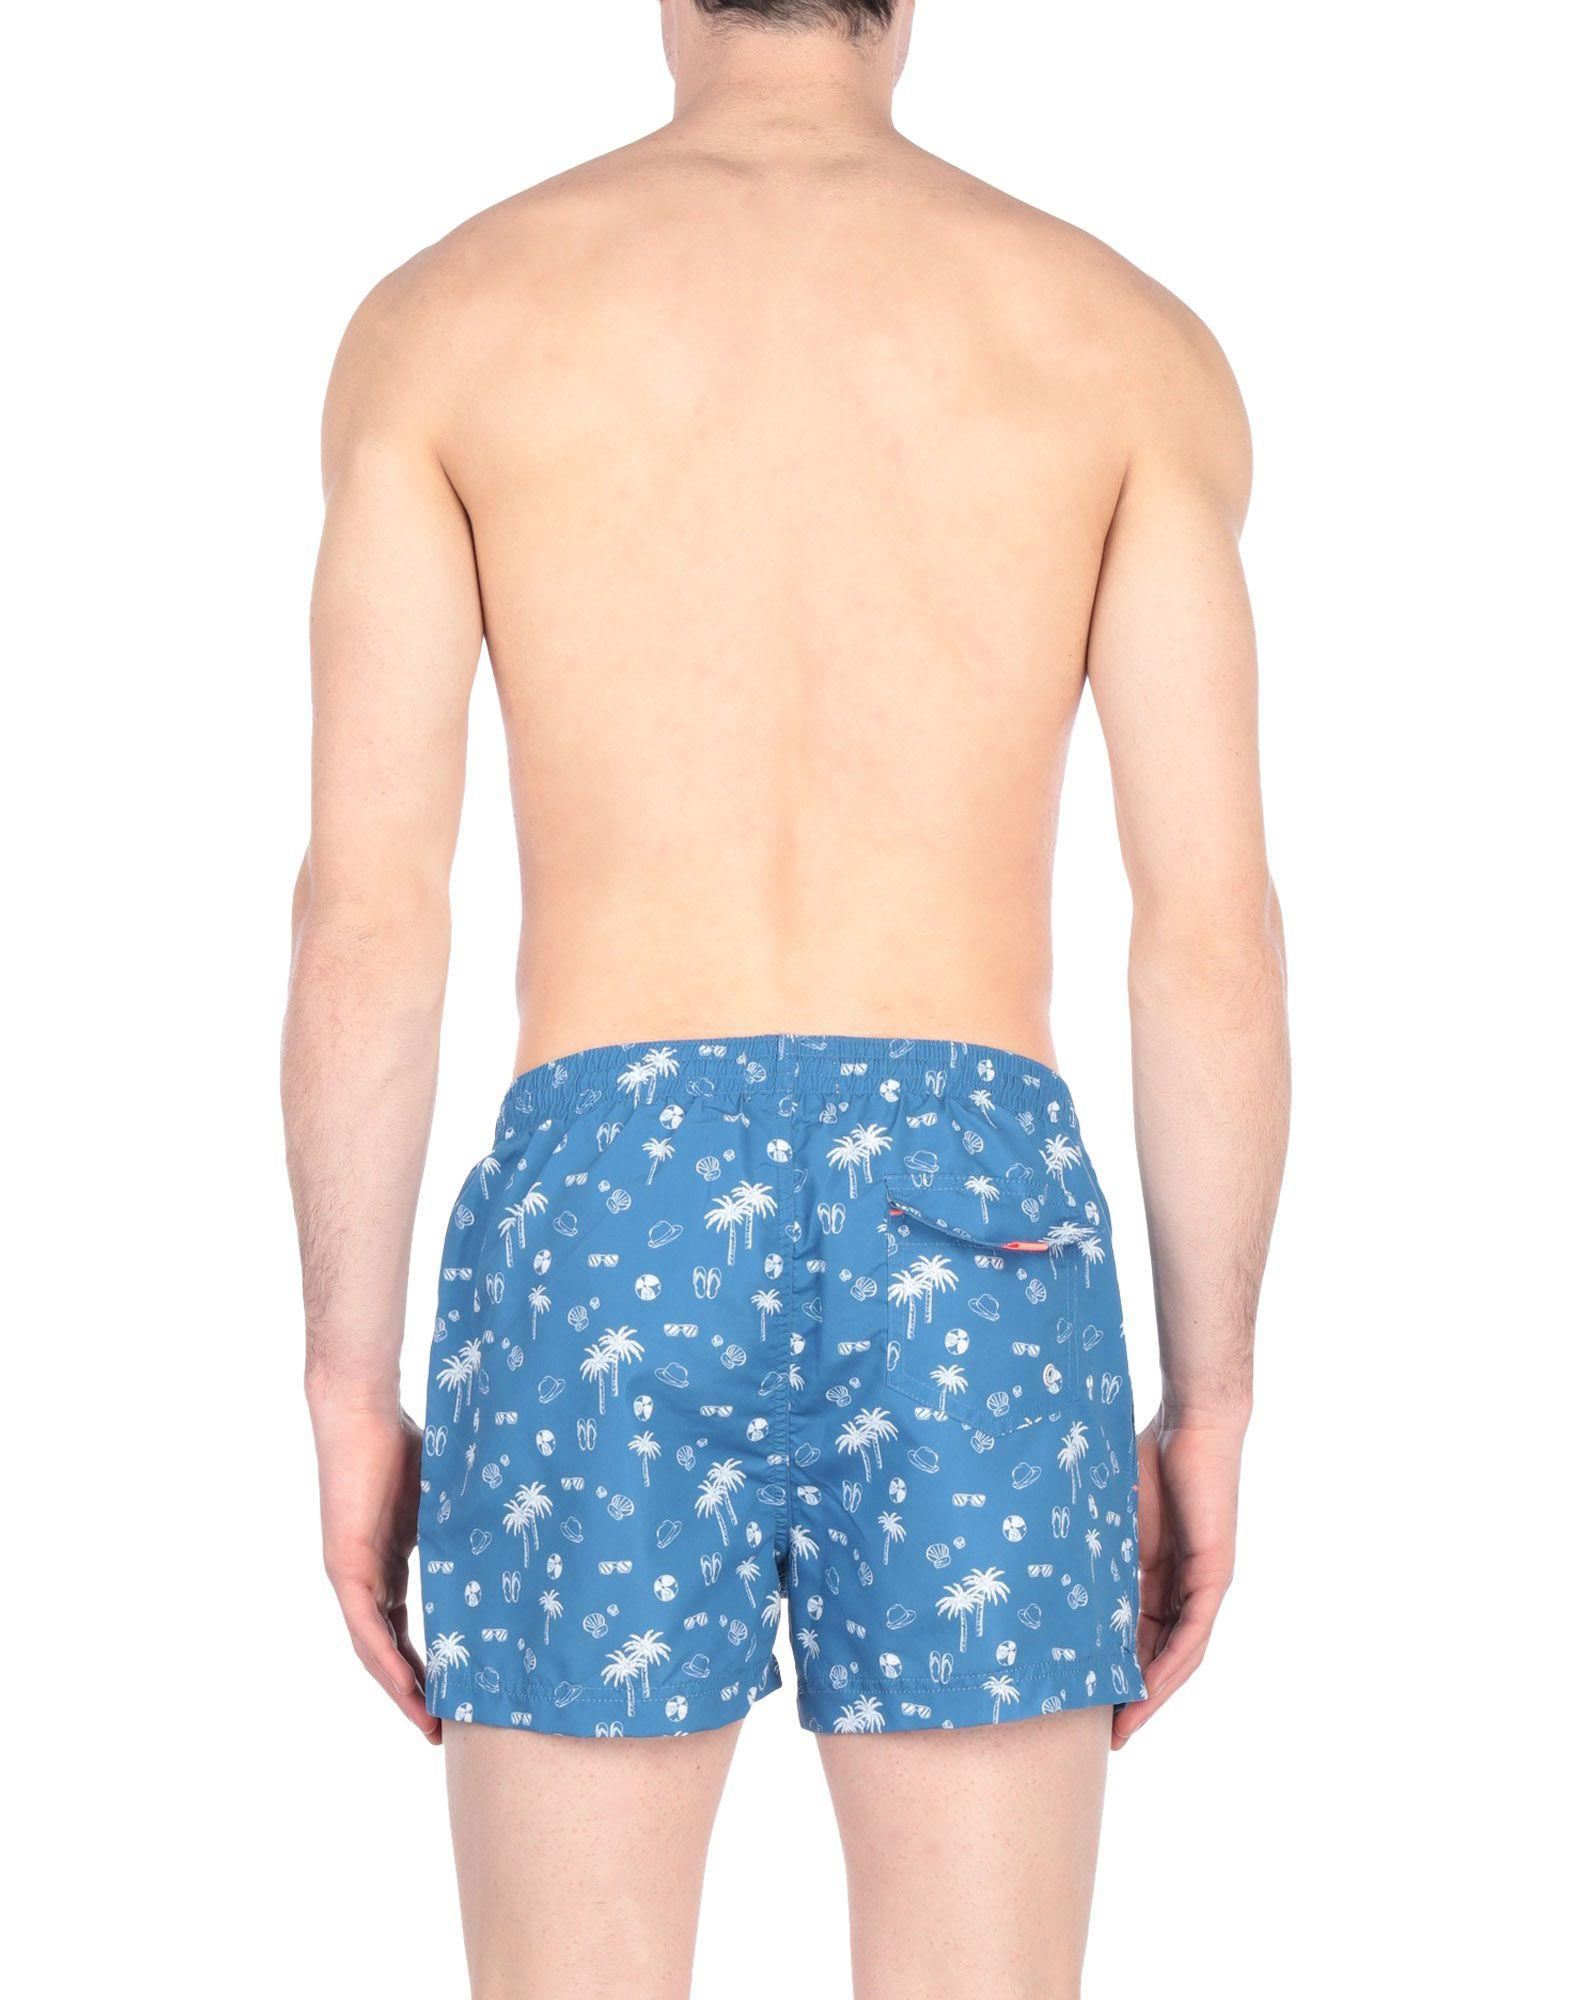 605a5f6657 Pepe Jeans Swimming Trunks in Blue for Men - Save 67% - Lyst